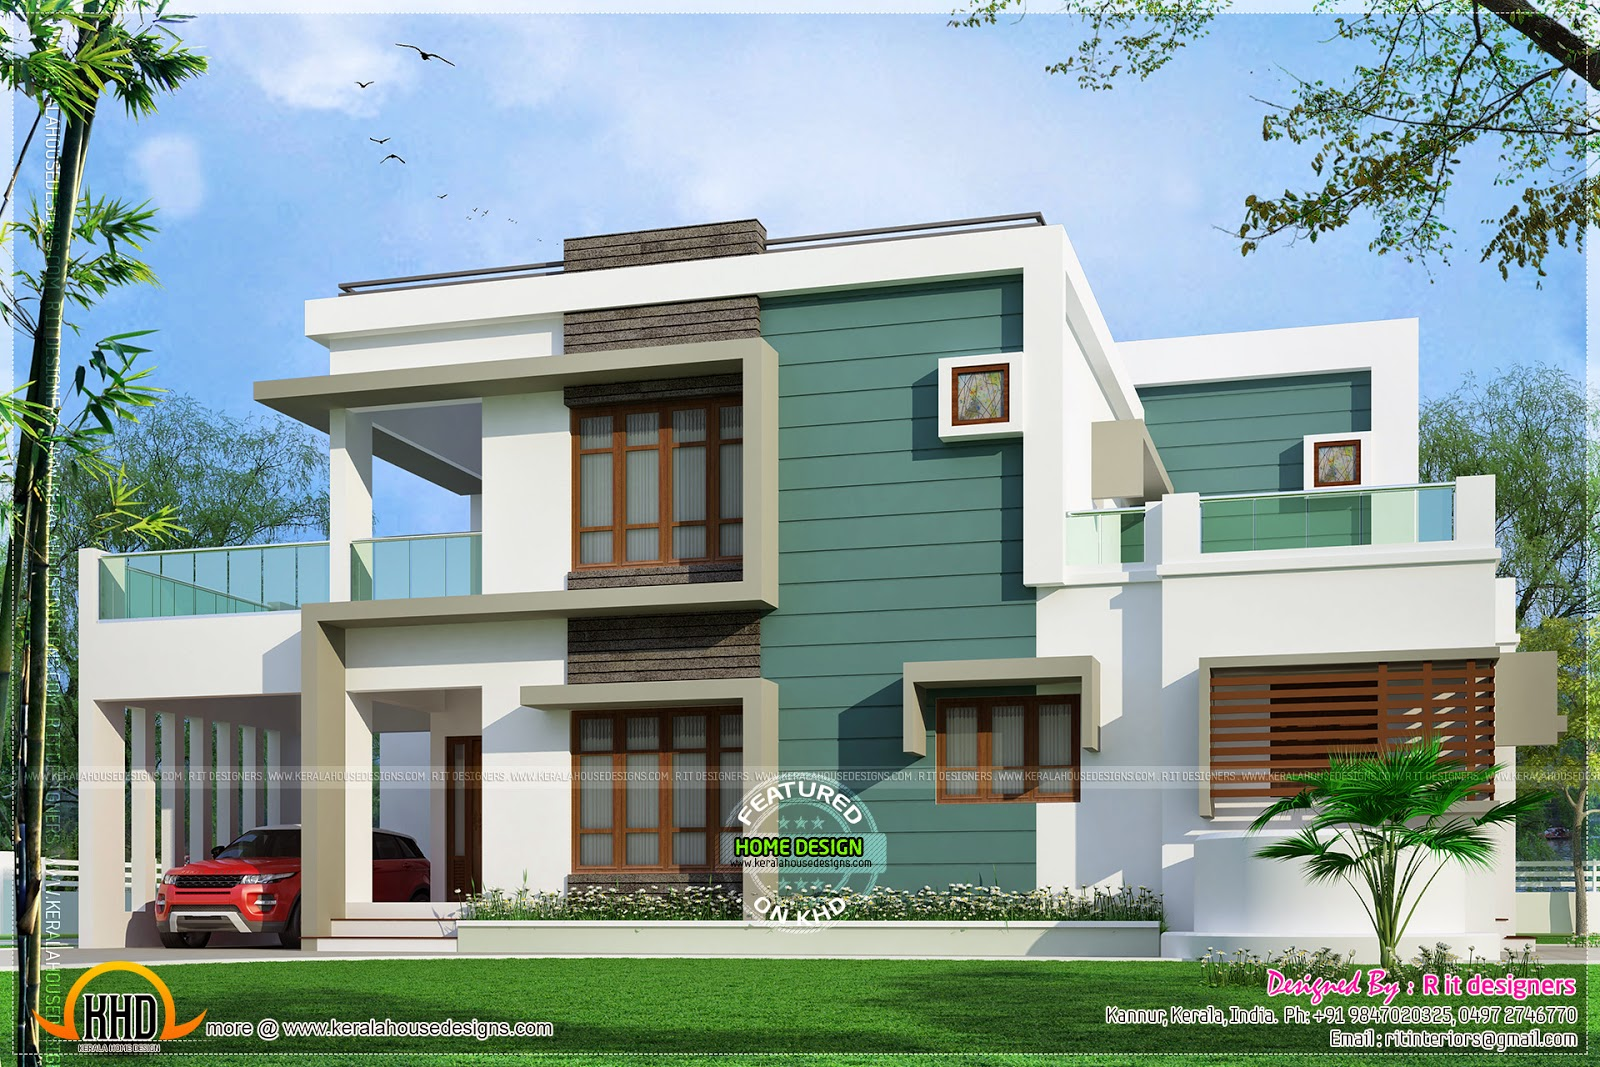 Kannur home design kerala home design and floor plans for Home plans and designs